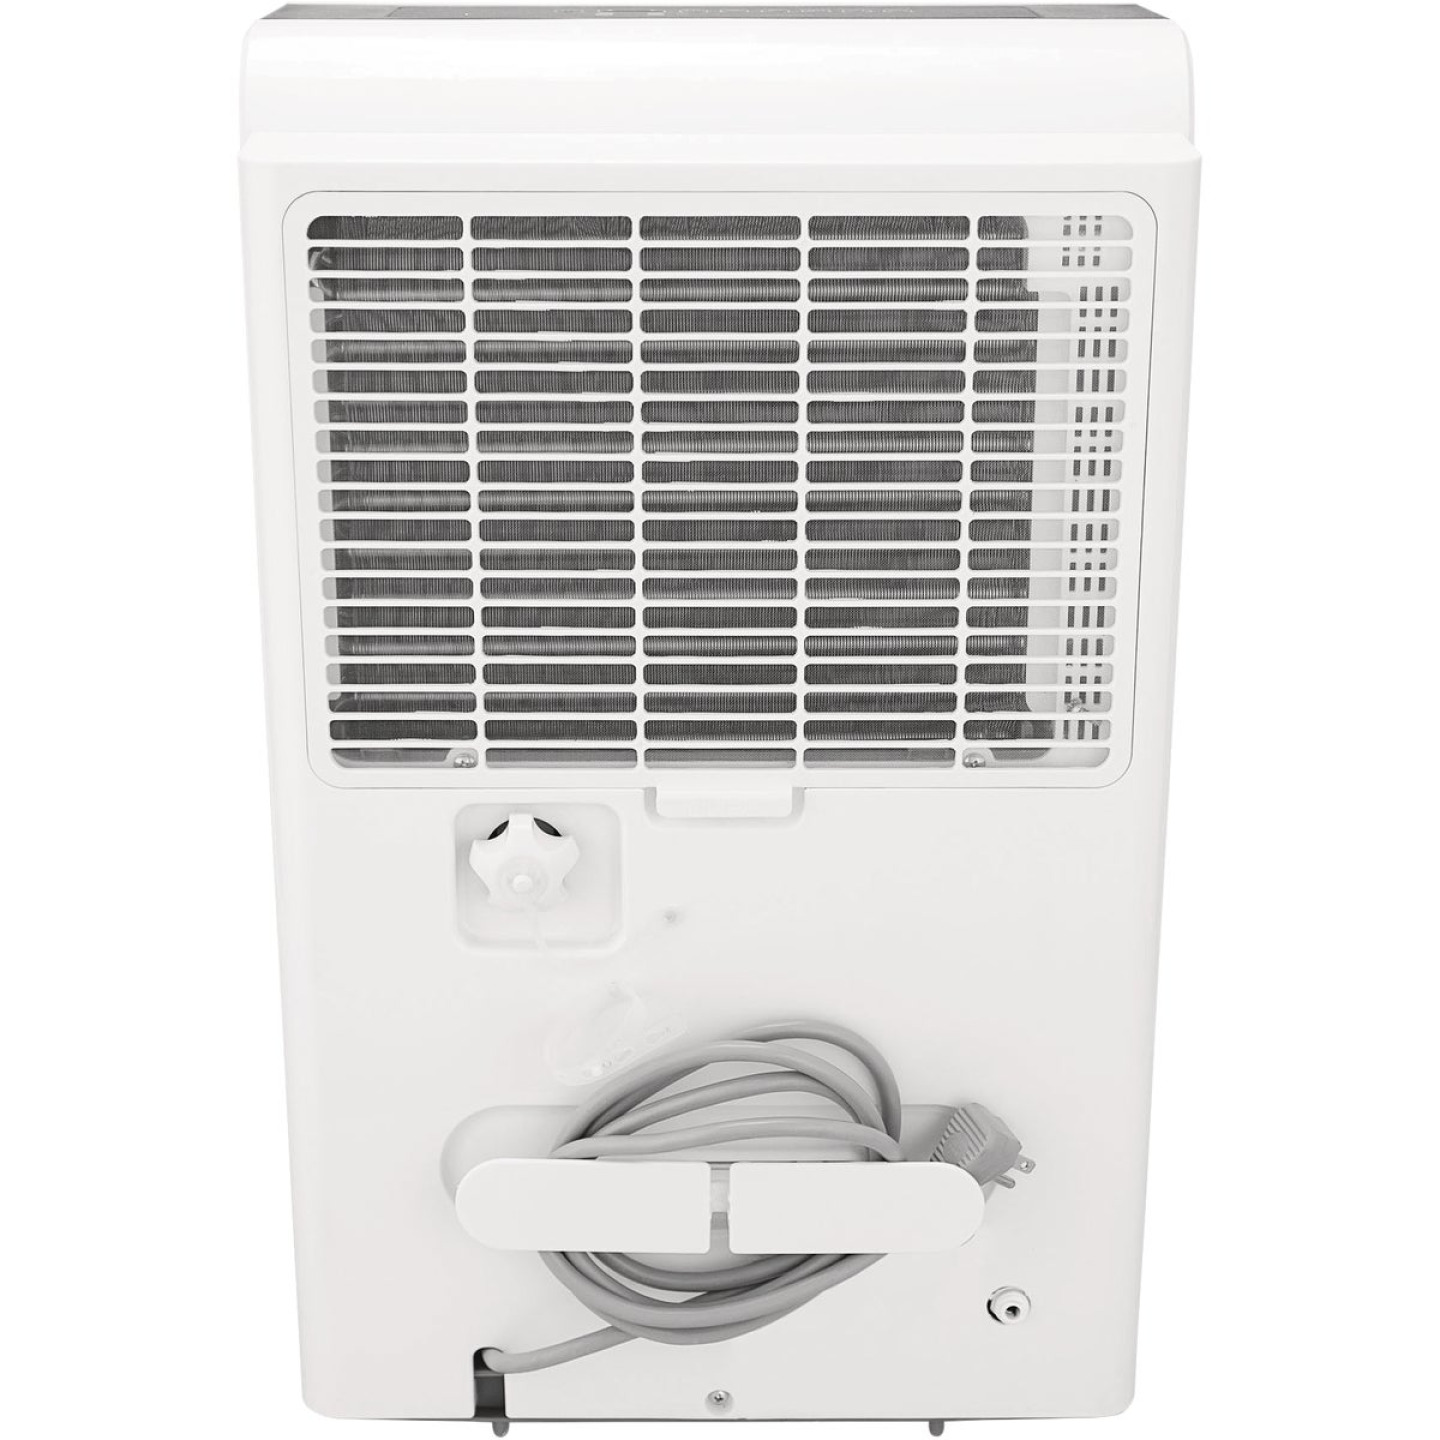 Perfect Aire 50 Pt./Day 645 Sq. Ft. Coverage 2-Speed Flat Panel Dehumidifier Image 4